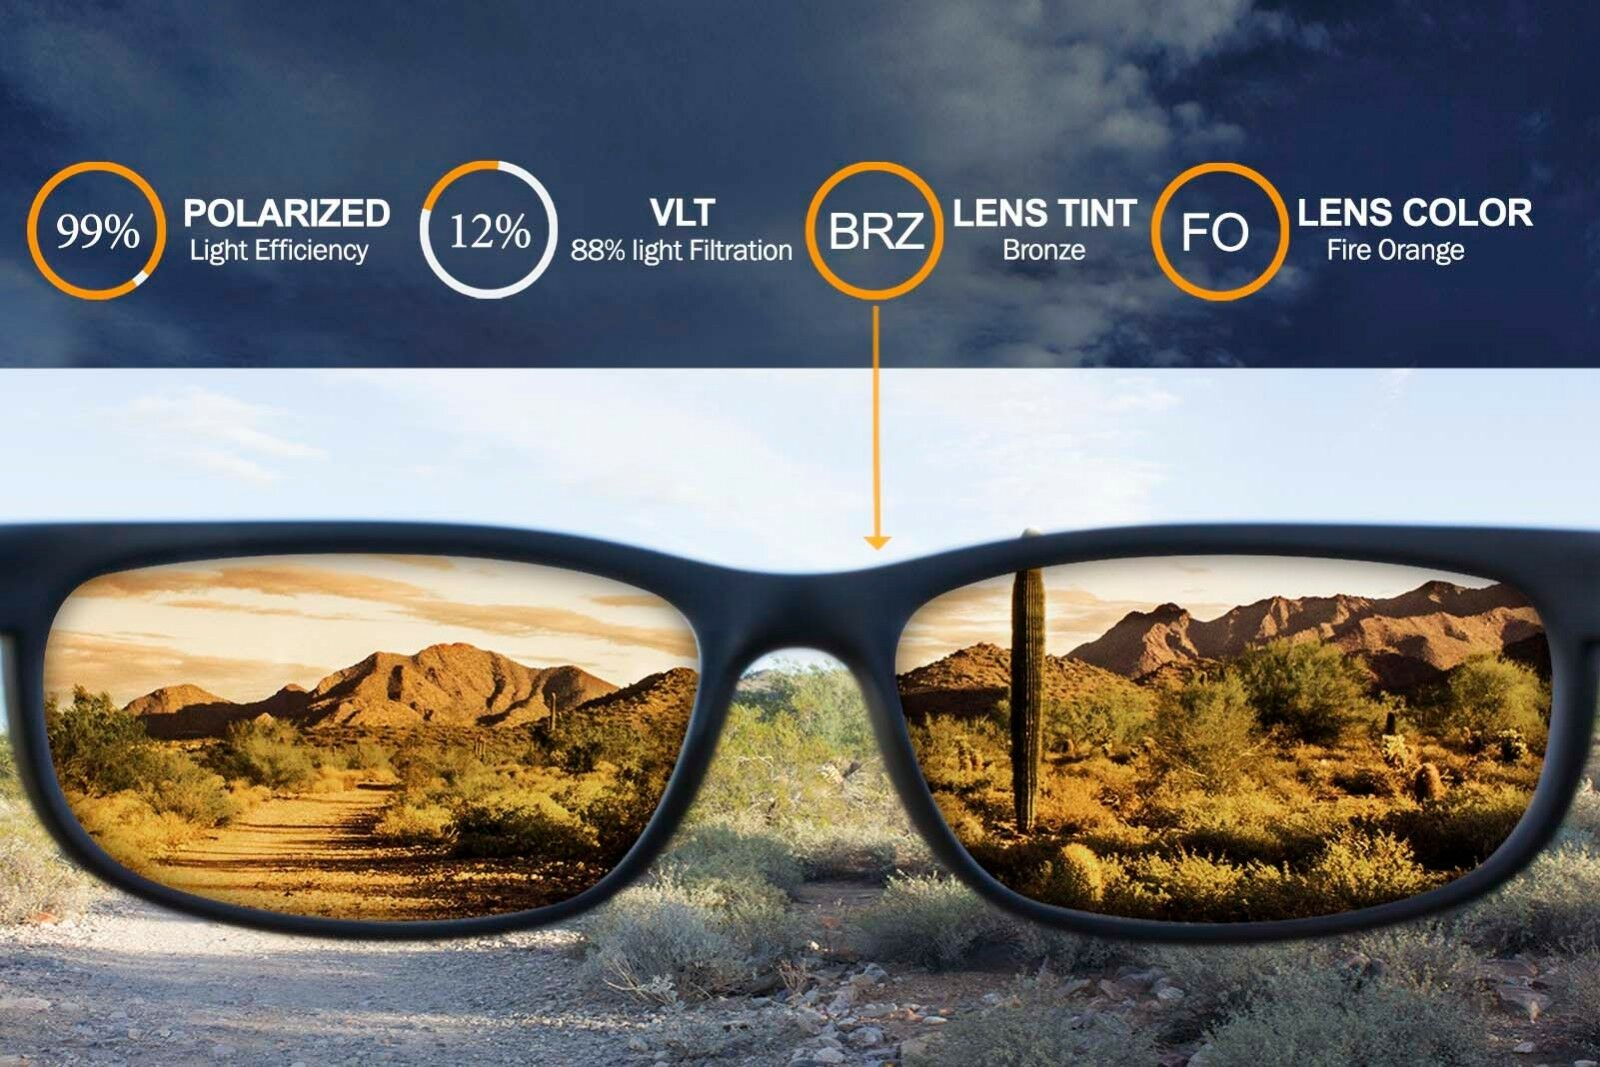 a32e8f4a2a Polarized Ikon Replacement Lenses for Ray Ban Rb4165 Justin 54mm - Fire  Orange